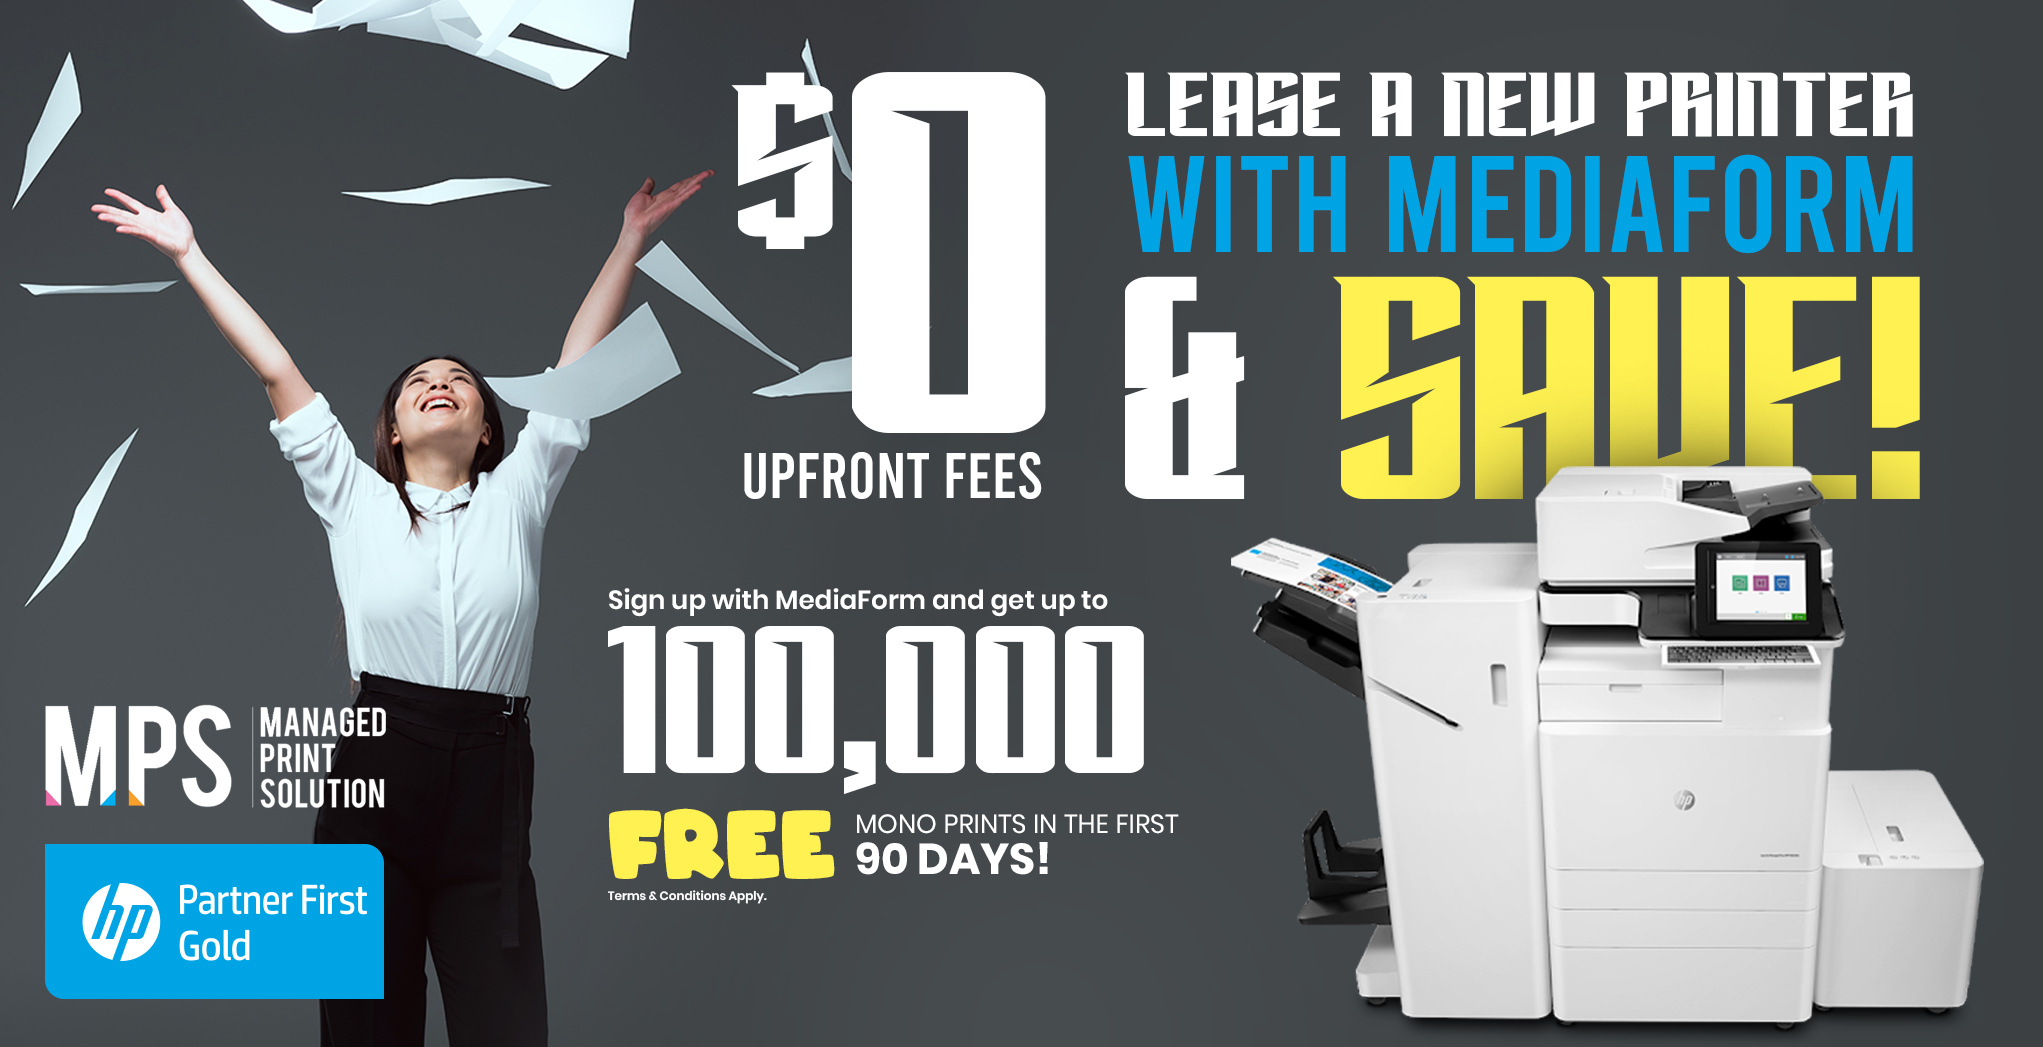 $0 Upfront MPS with MediaForm + Up to 100,000 Free Mono Prints